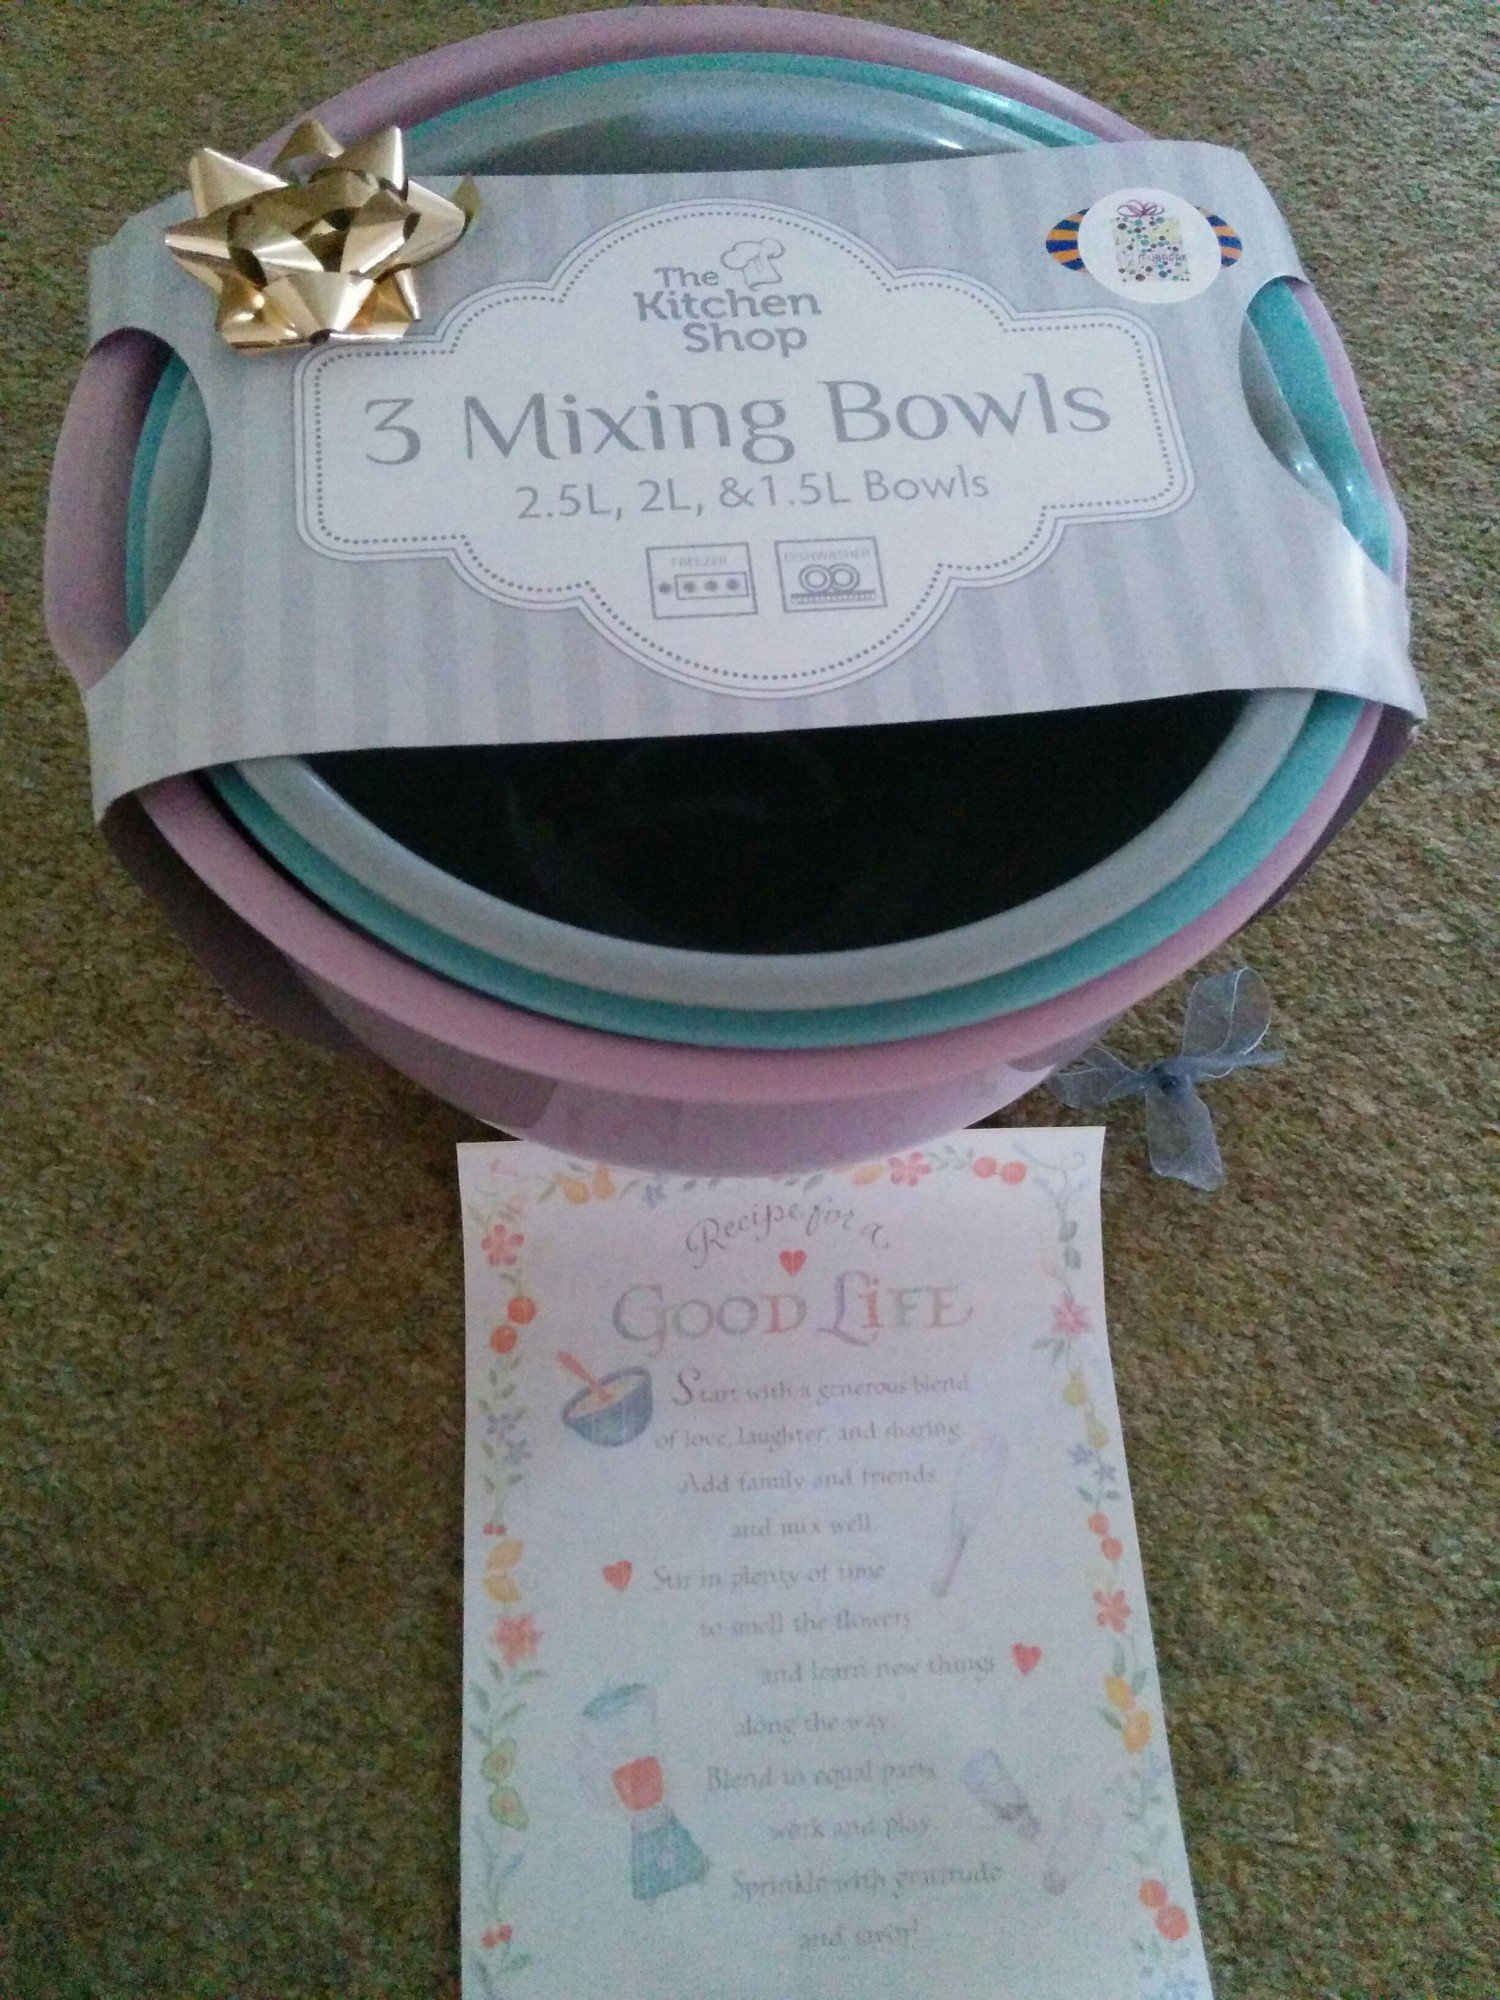 Thoughtful Gift Ideas 19: Mixing Bowl with a Recipe for a Good Life!